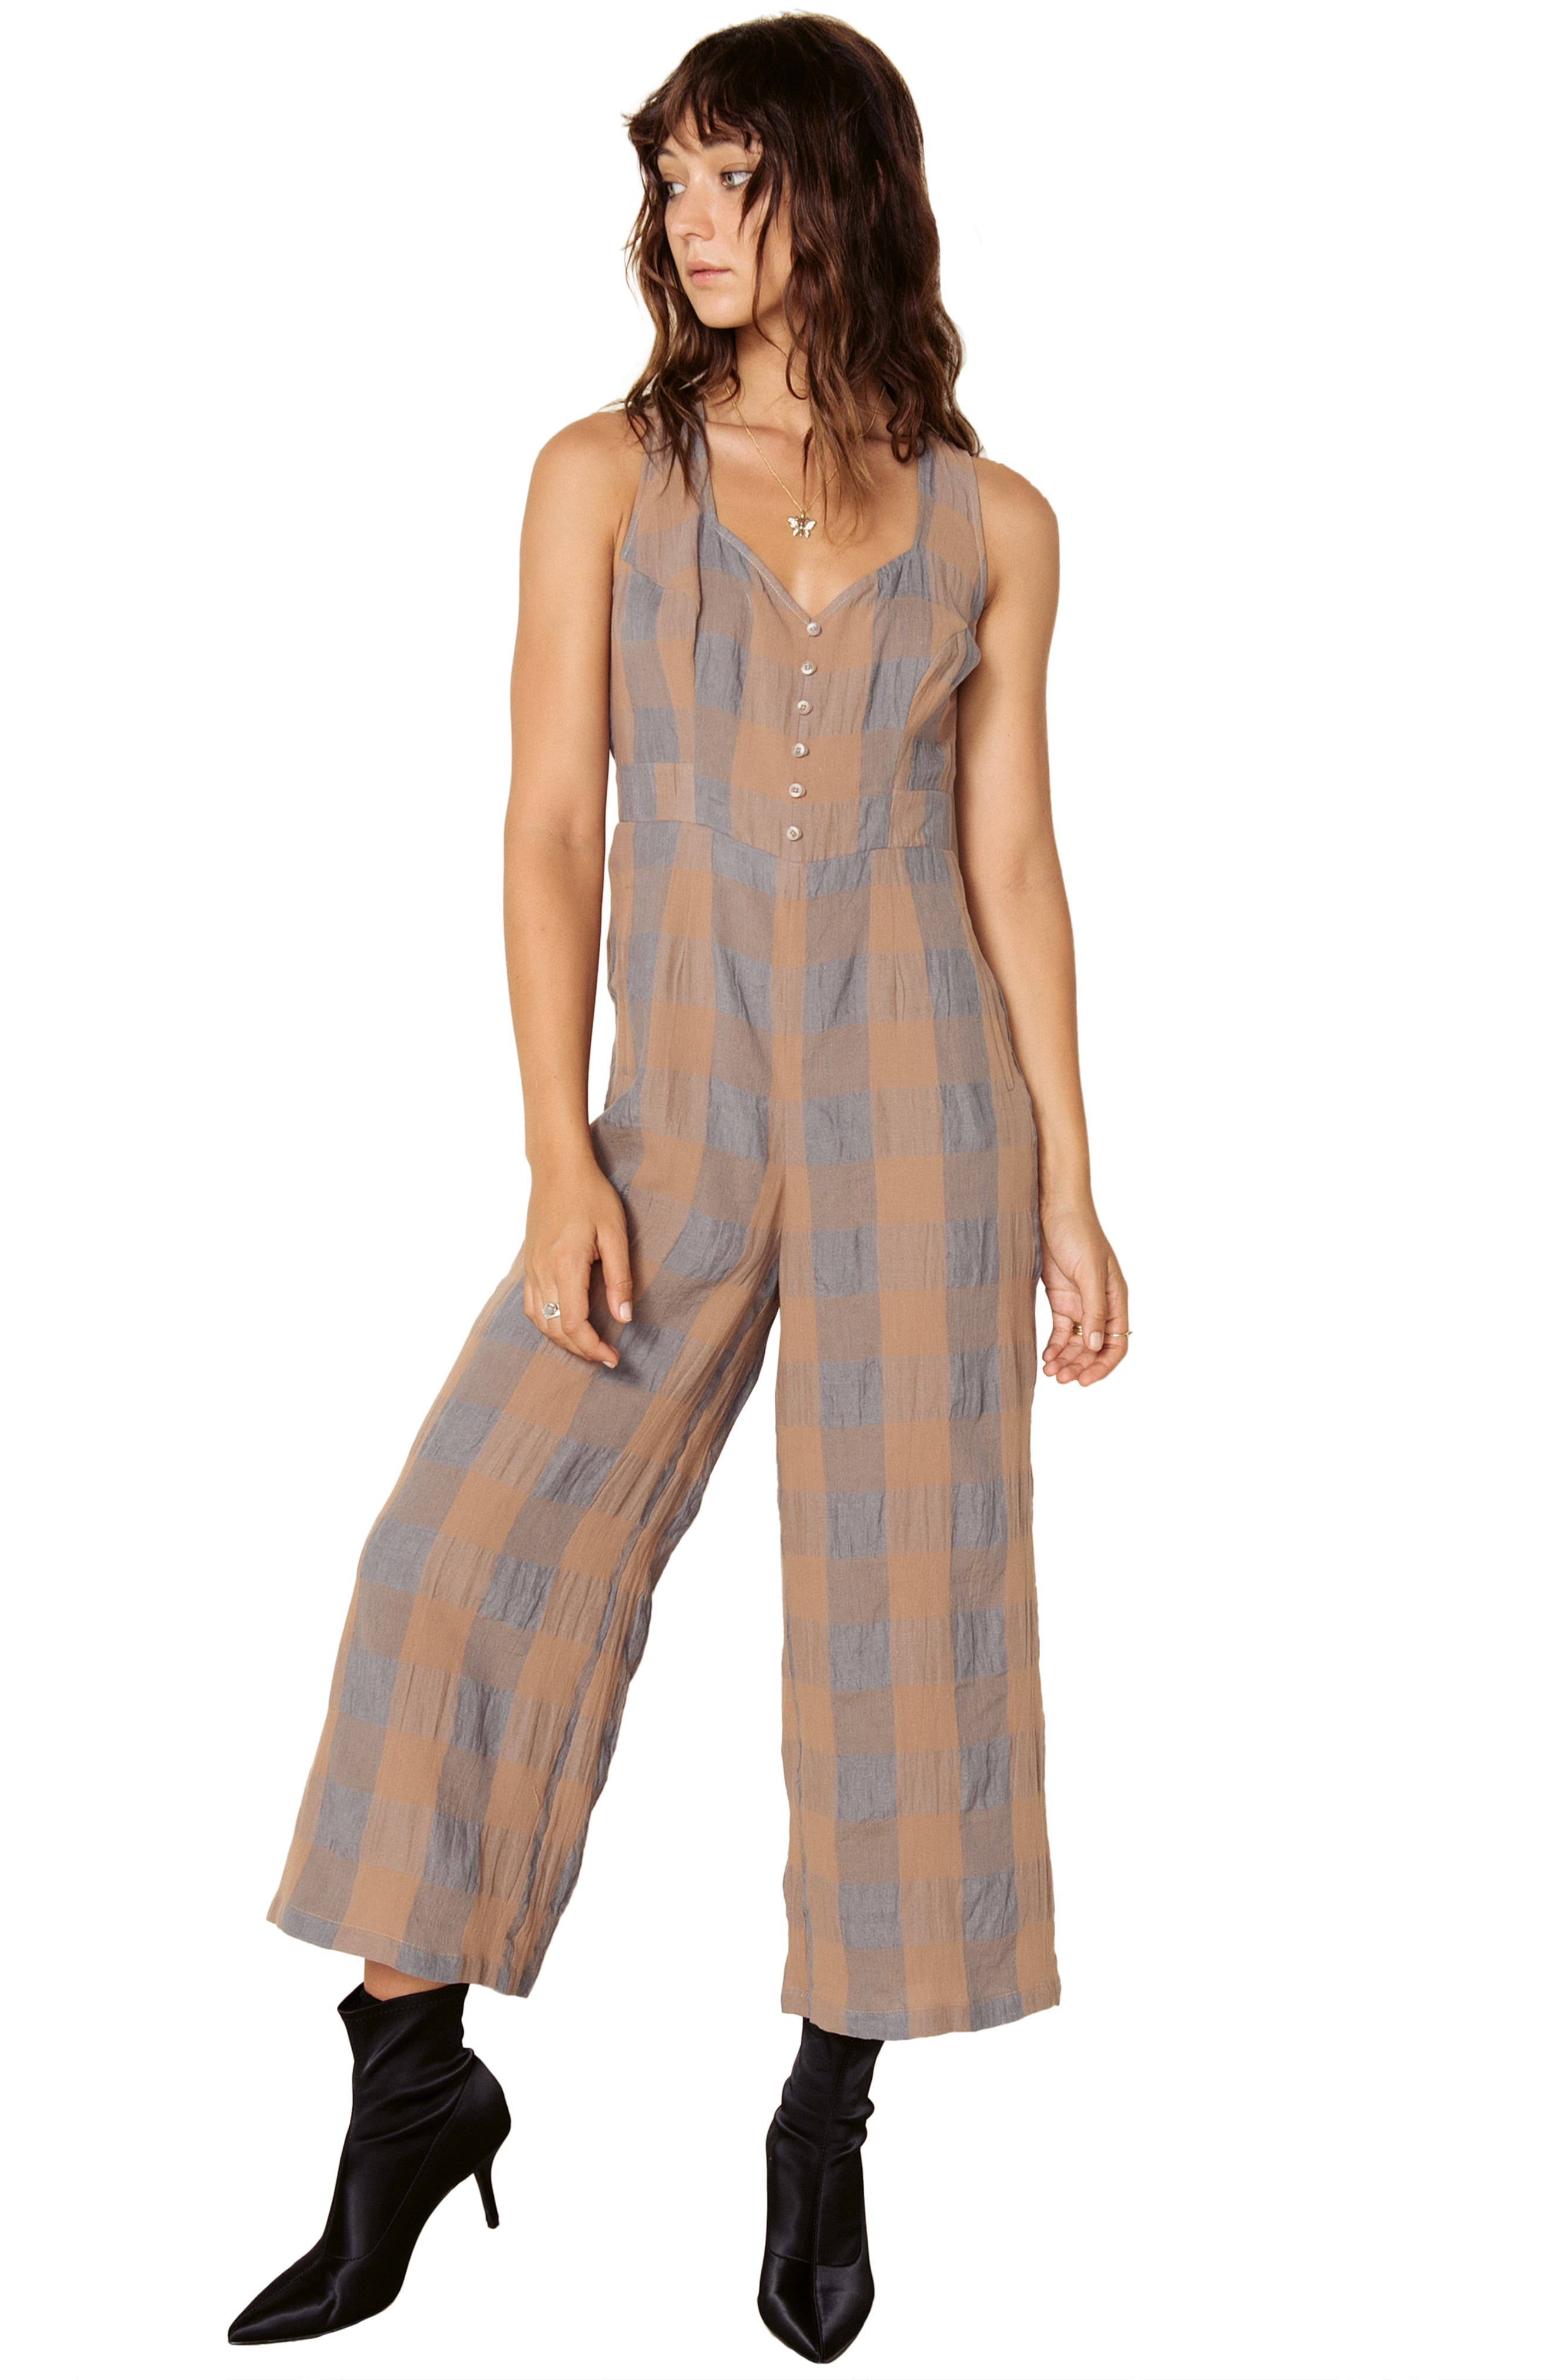 Frankie Check Linen Blend Jumpsuit,                             Alternate thumbnail 10, color,                             SMOKE AND BISCUIT